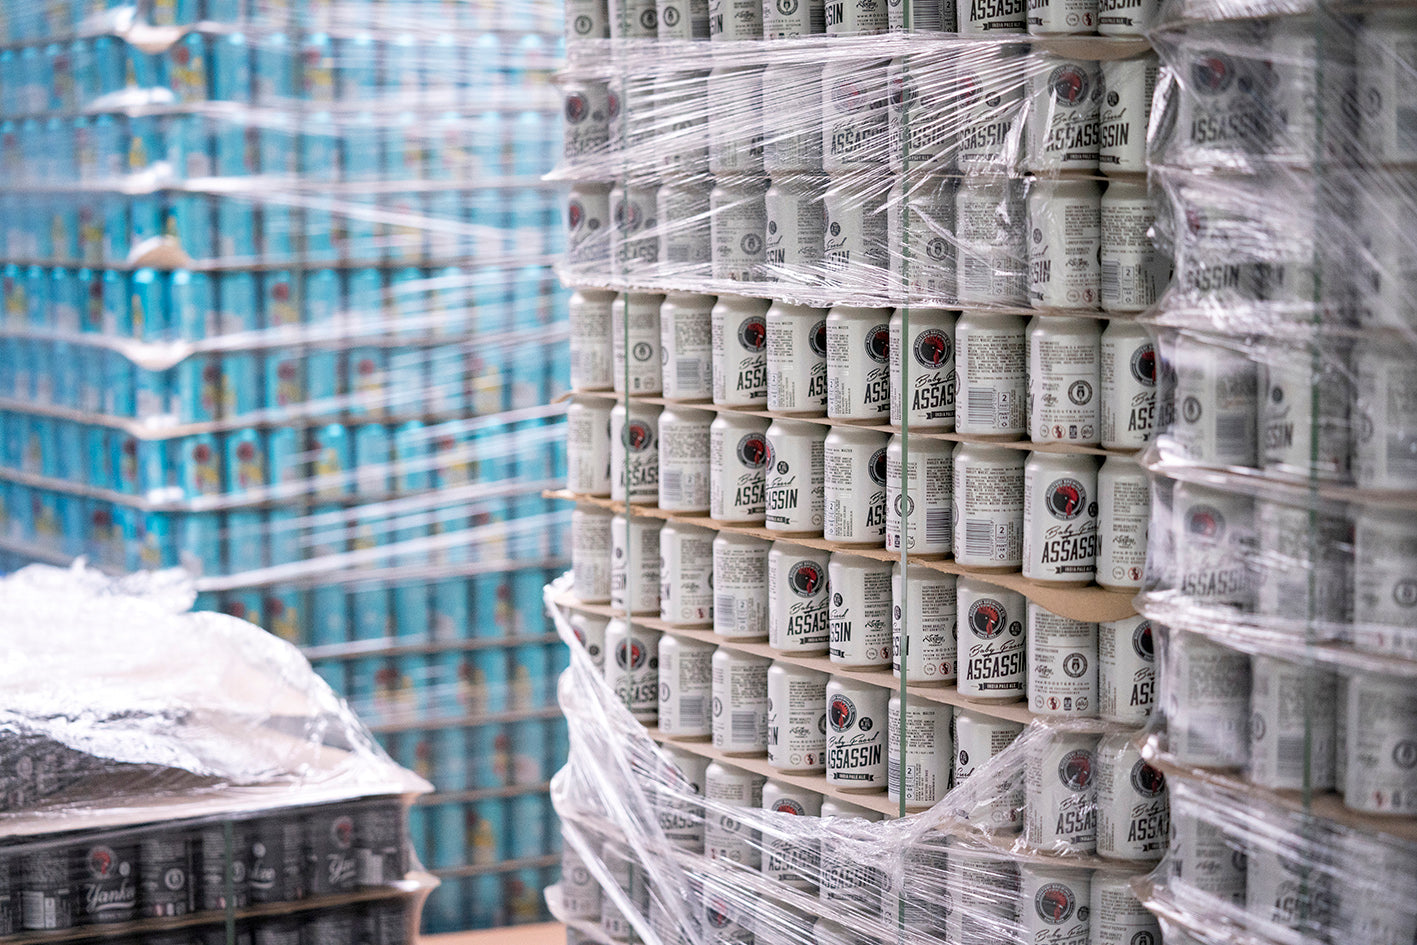 Stacks of craft beer cans including core range IPA Baby-Faced Assassin.